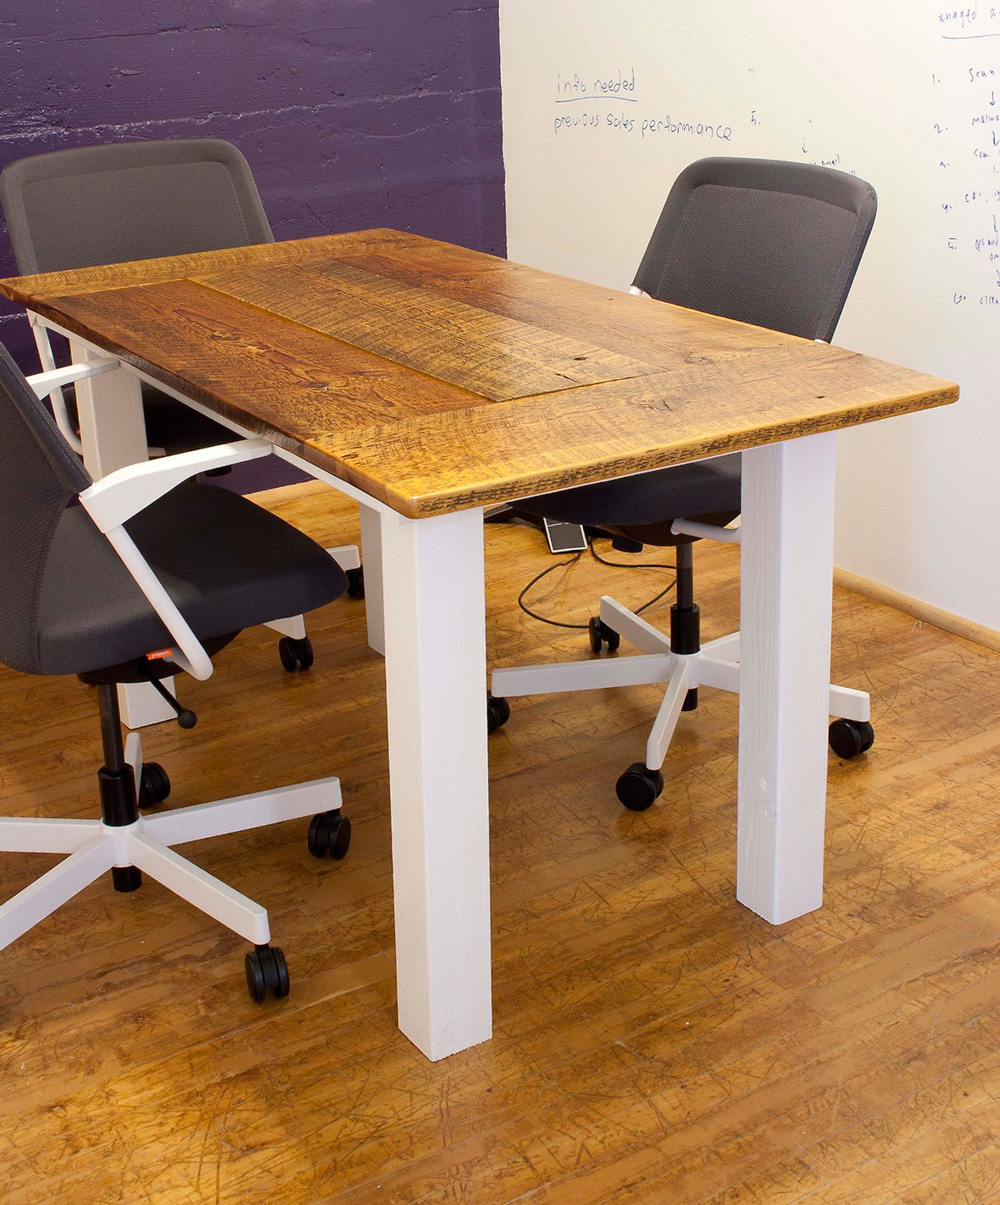 Small reclaimed conference room table